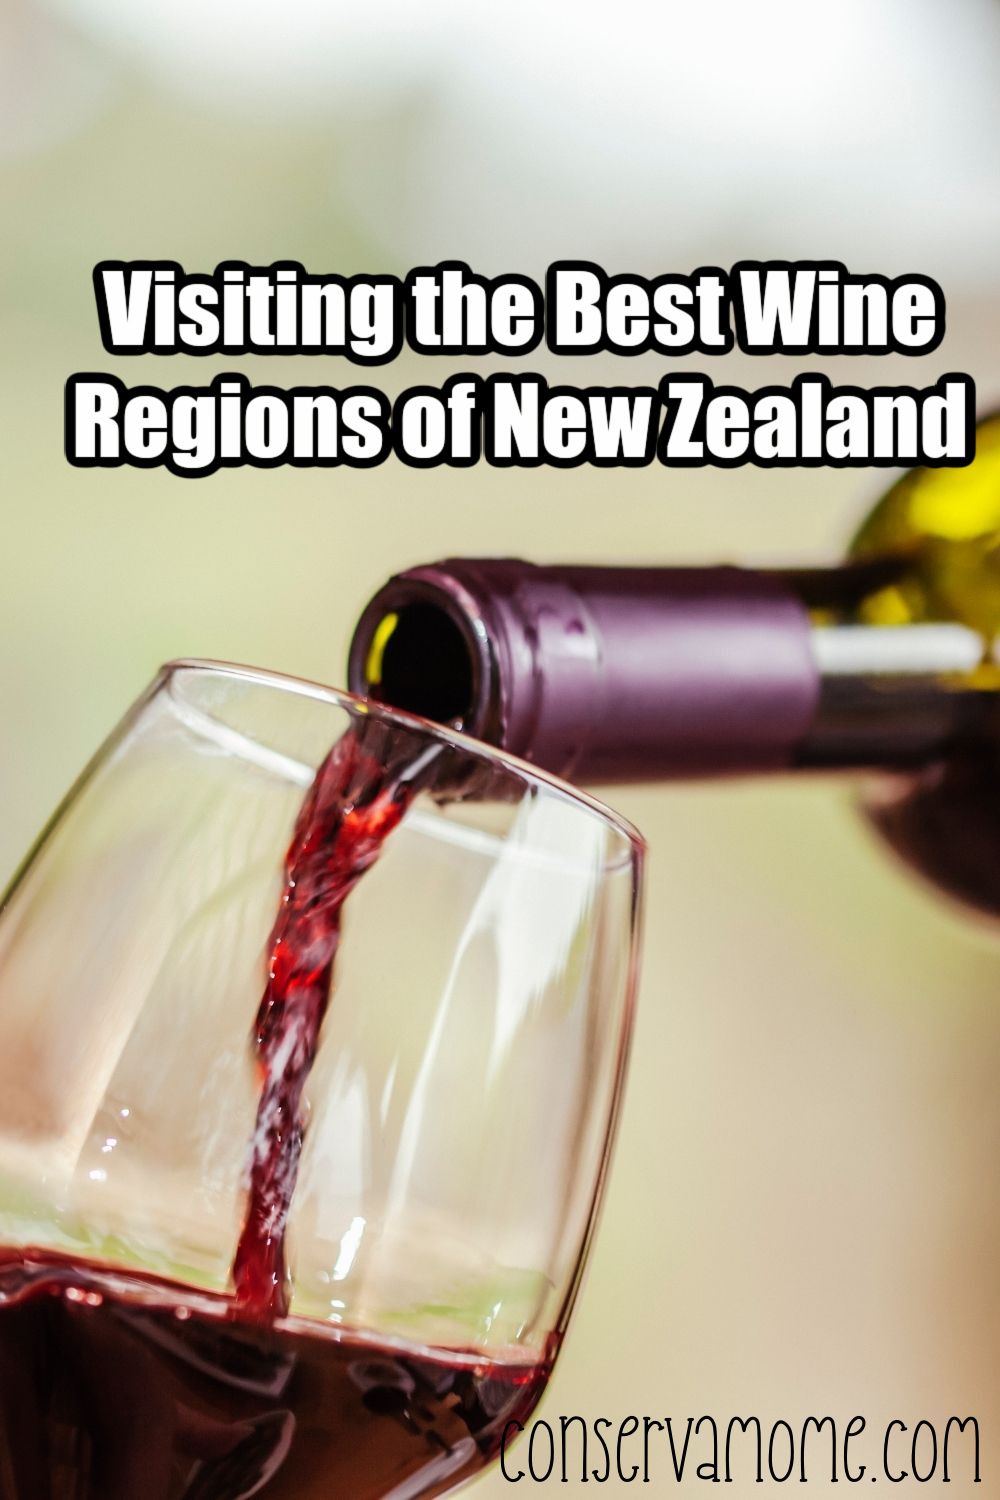 Visiting the Best Wine Regions of New Zealand